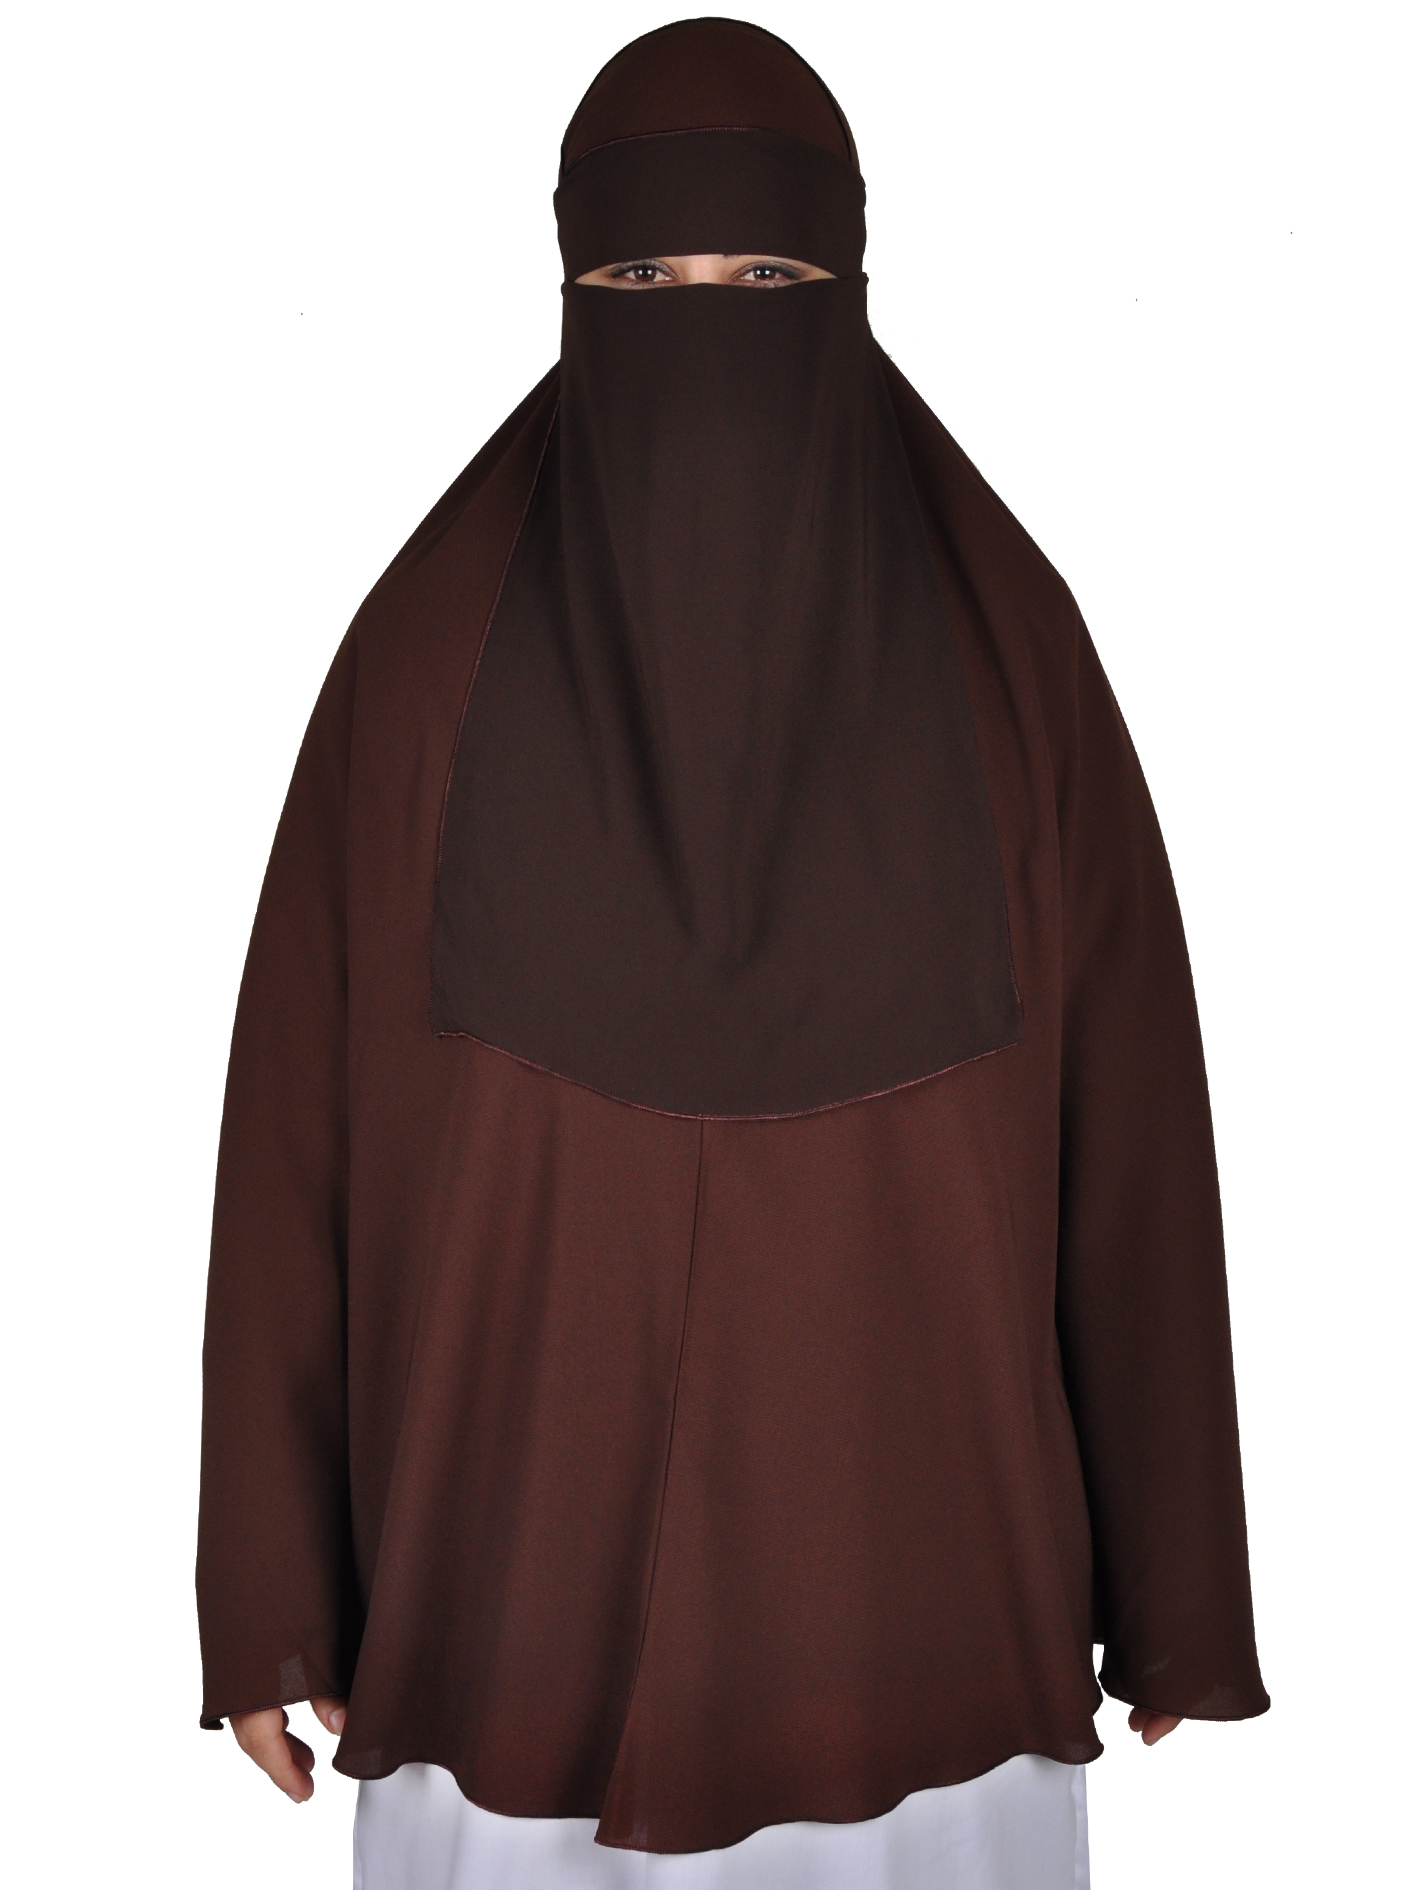 niqab gesichtsschleier braun hijab online kaufen egypt bazar shop. Black Bedroom Furniture Sets. Home Design Ideas